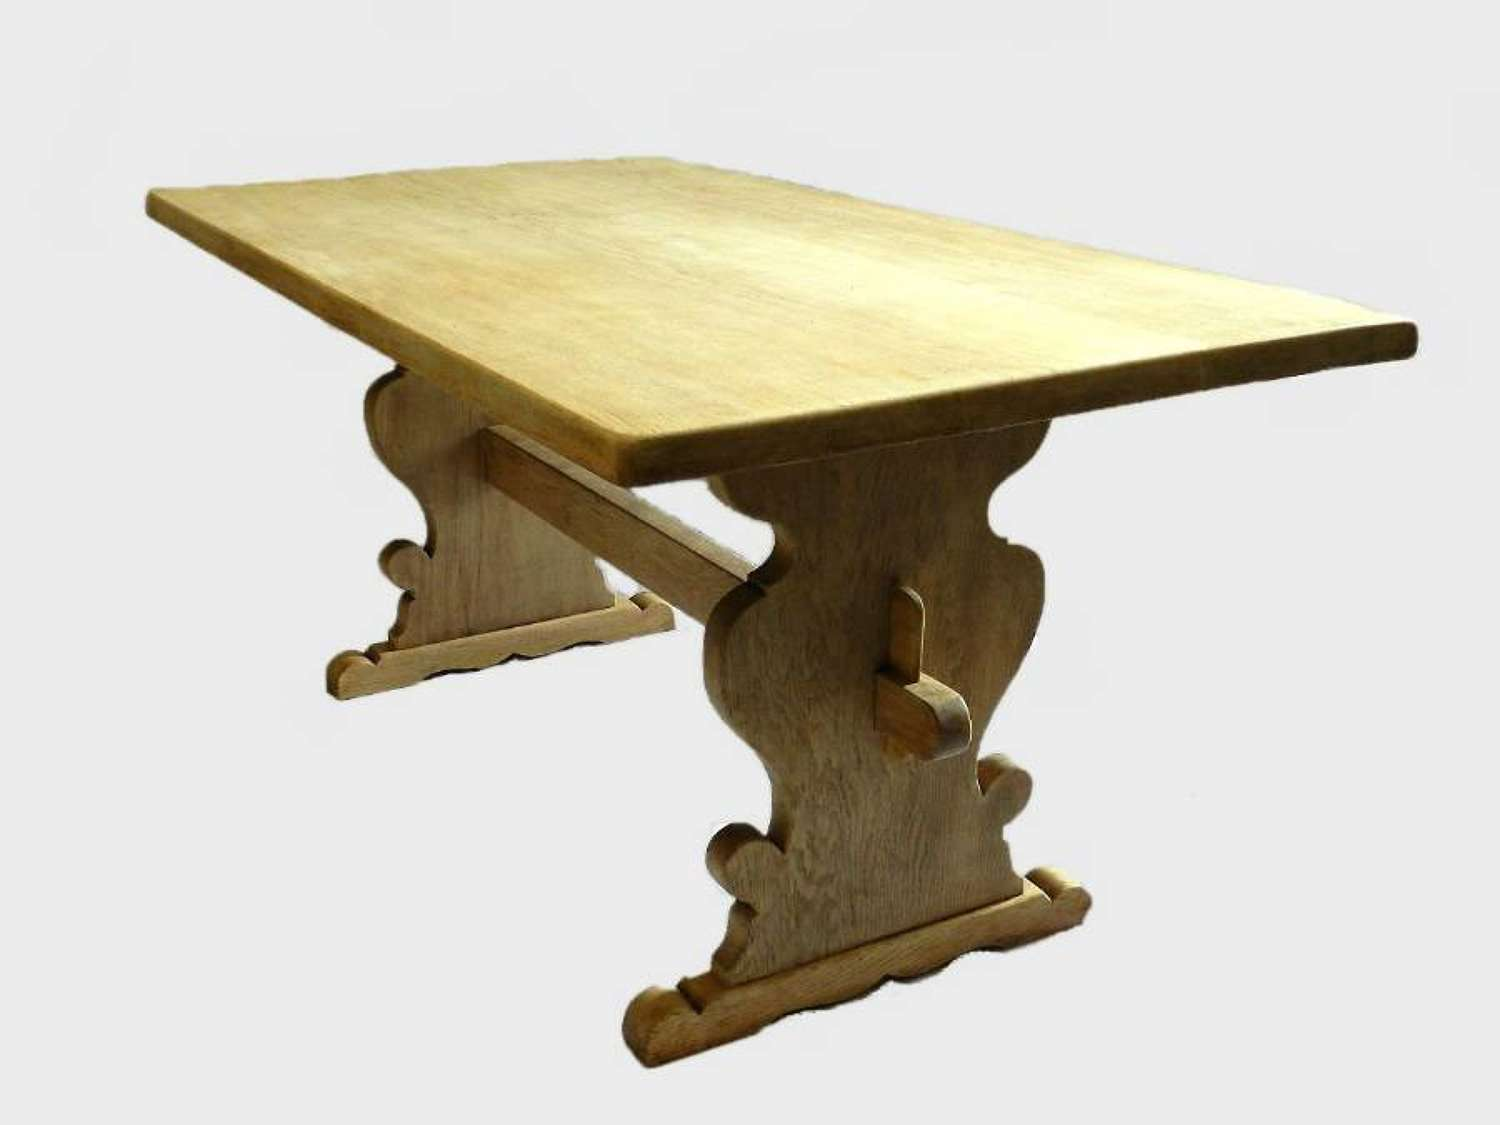 Bleached Elm Scandinavian Trestle Table Refectory Dining